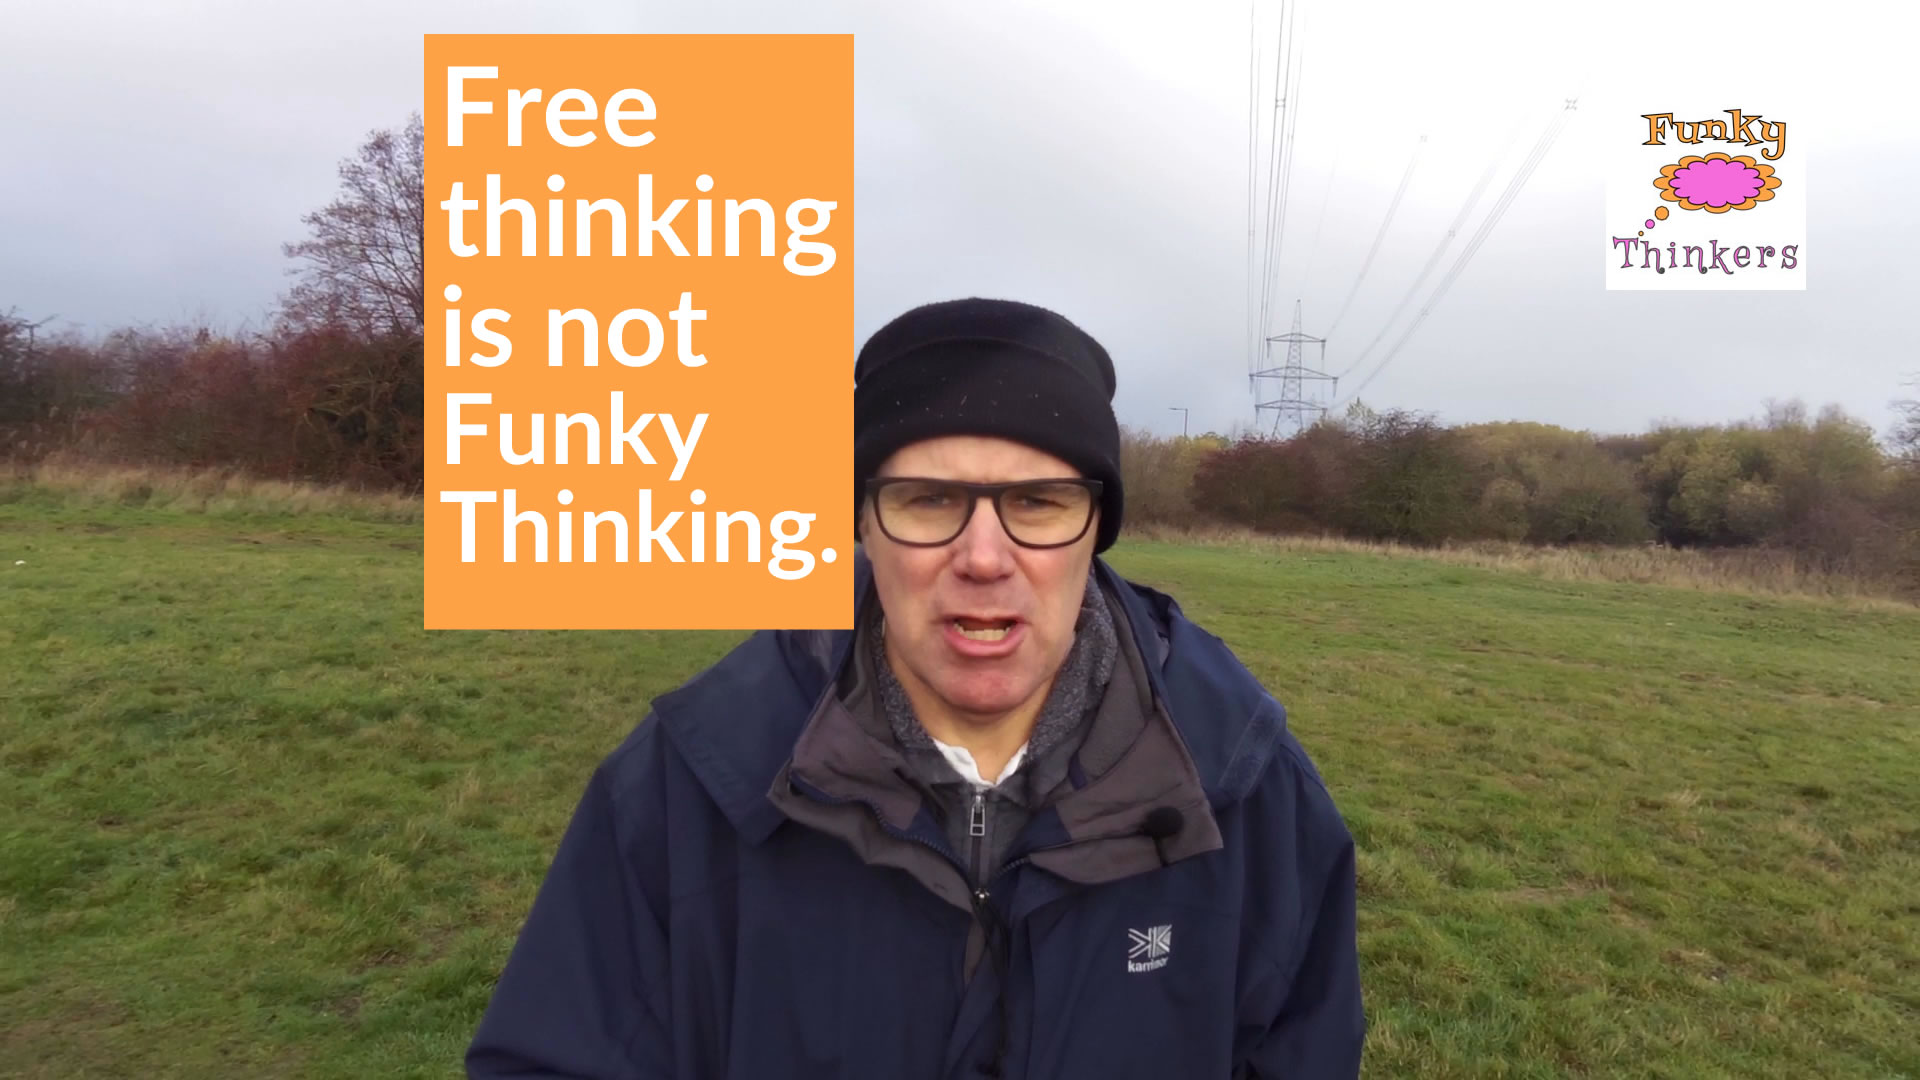 free thinking is not funky thinking